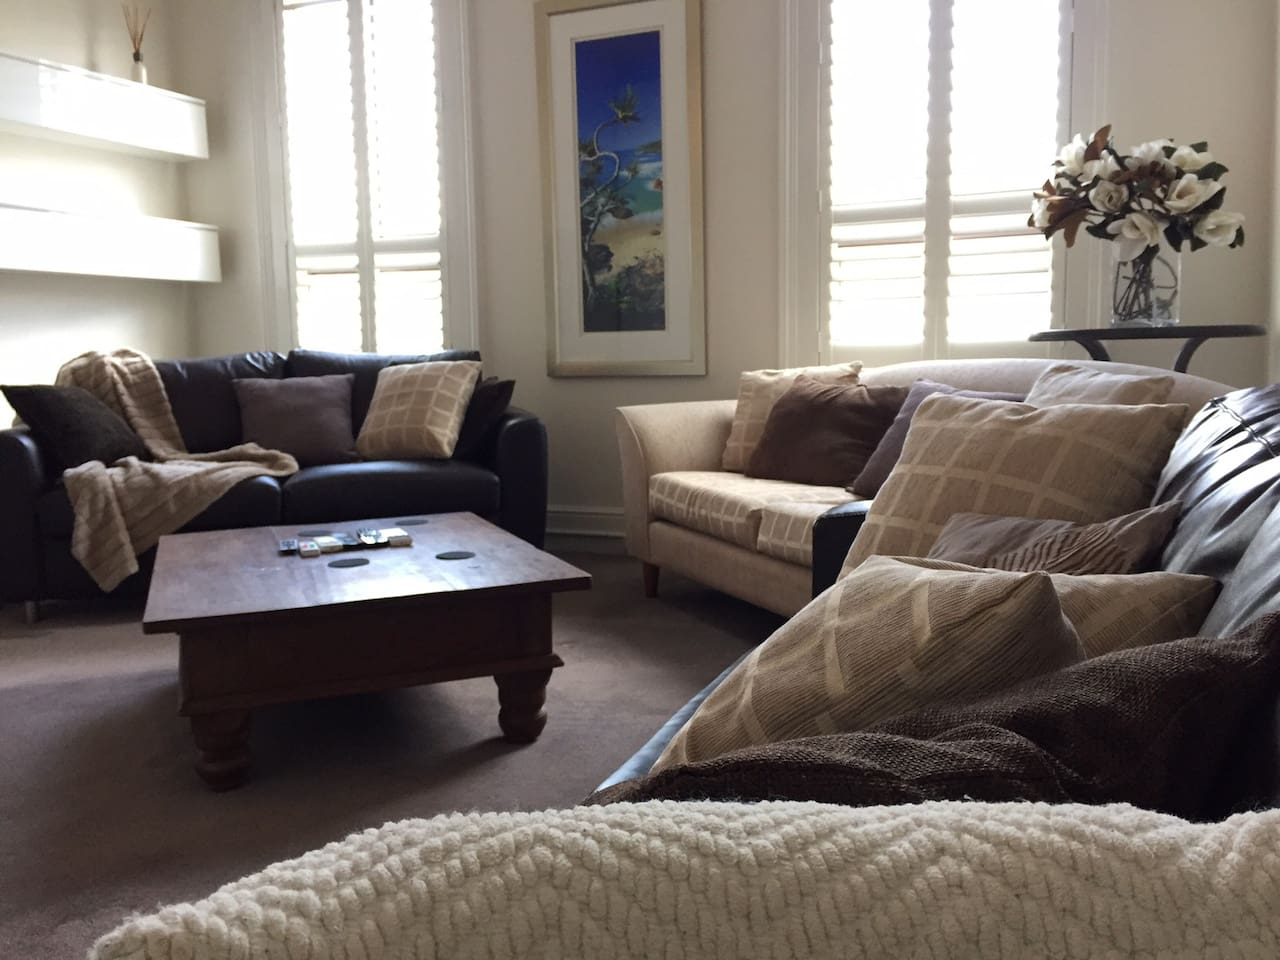 Large Lounge room - Enough room for whole family